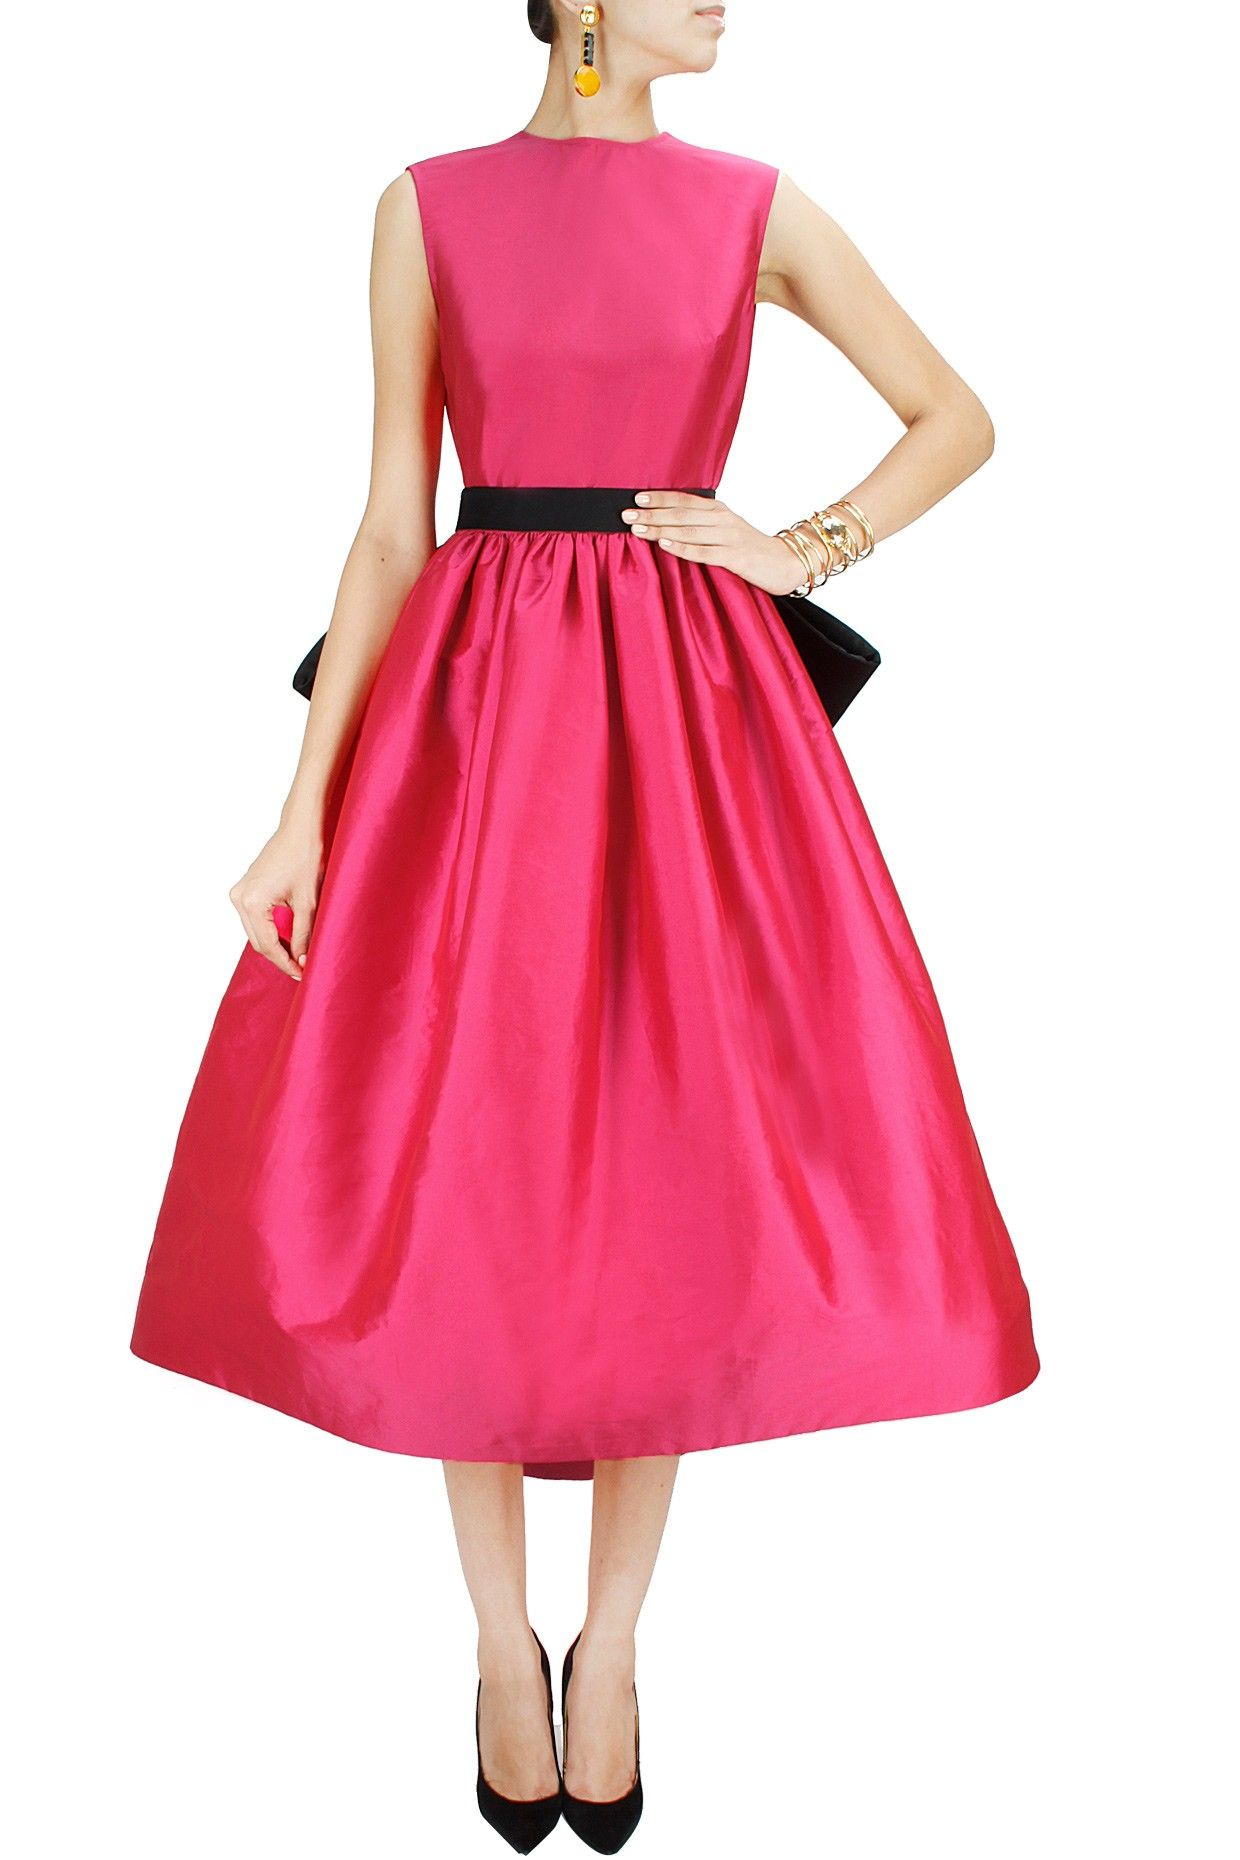 f0acea3365c06 Fuchsia pink asymmetrical flared dress with black bow belt available only  at…